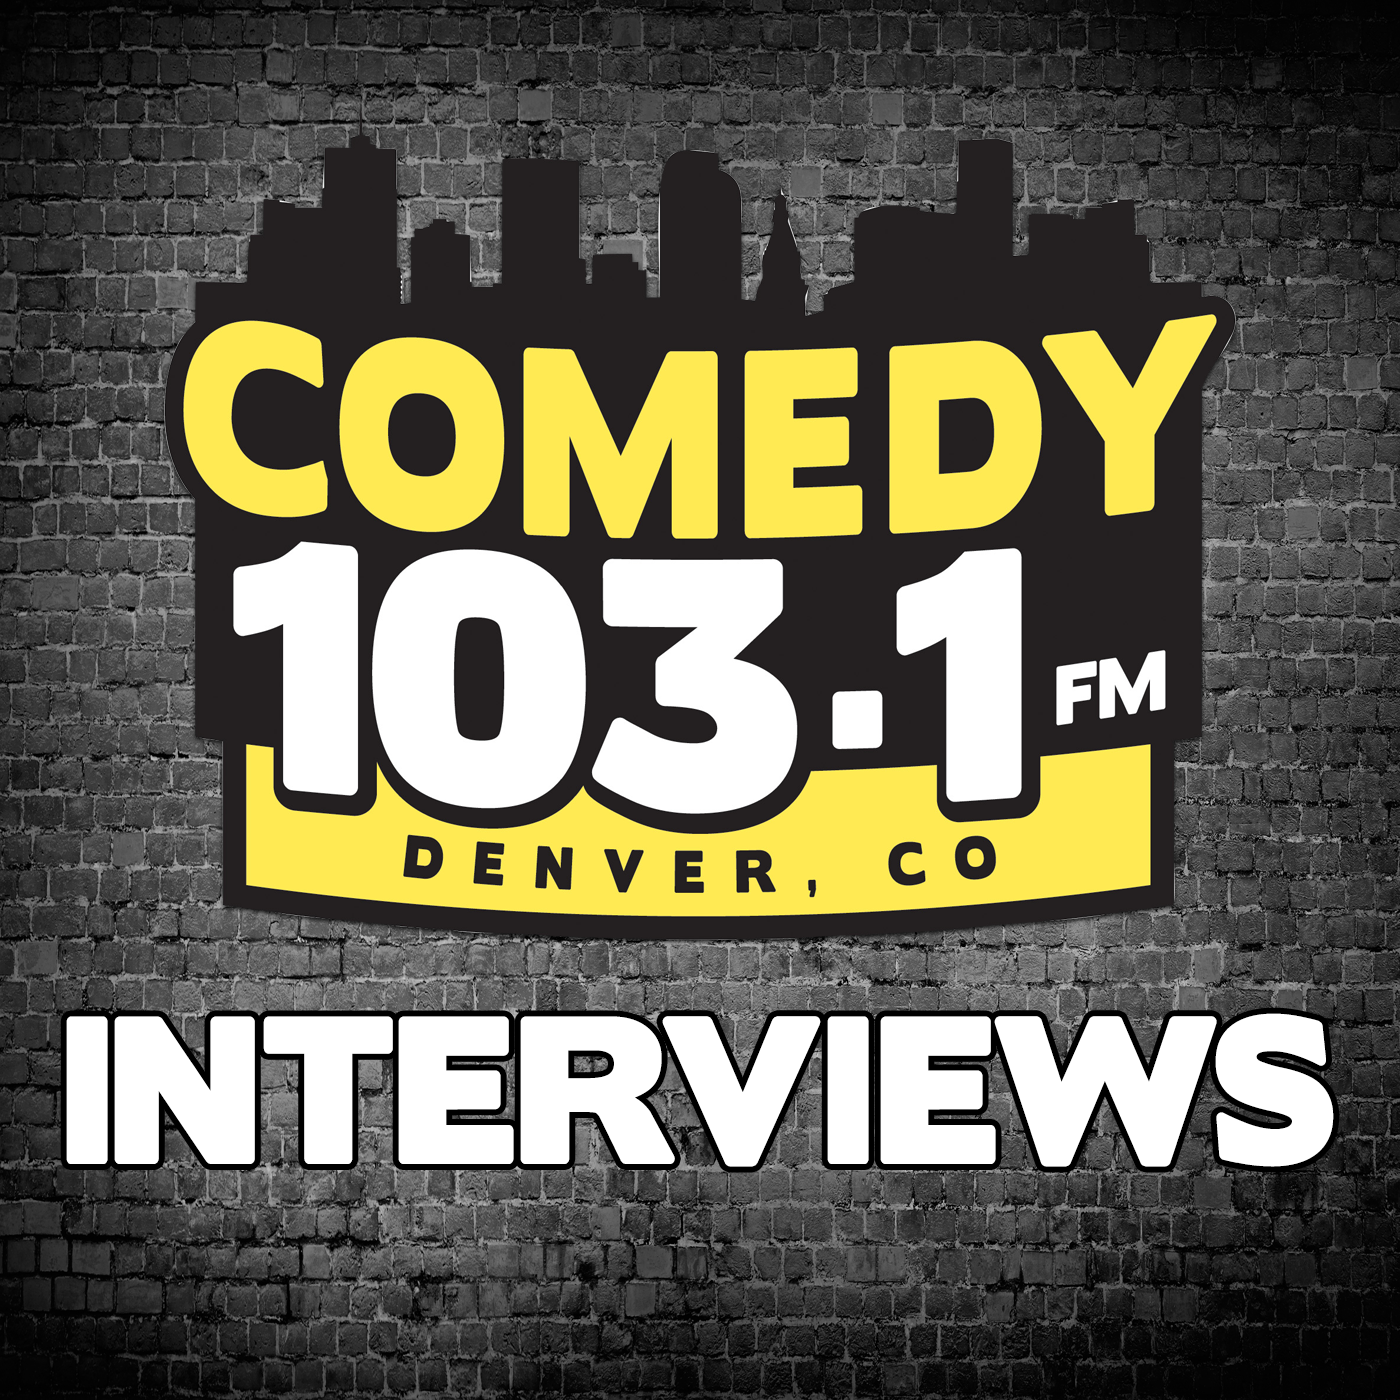 Interviews On Comedy 103.1